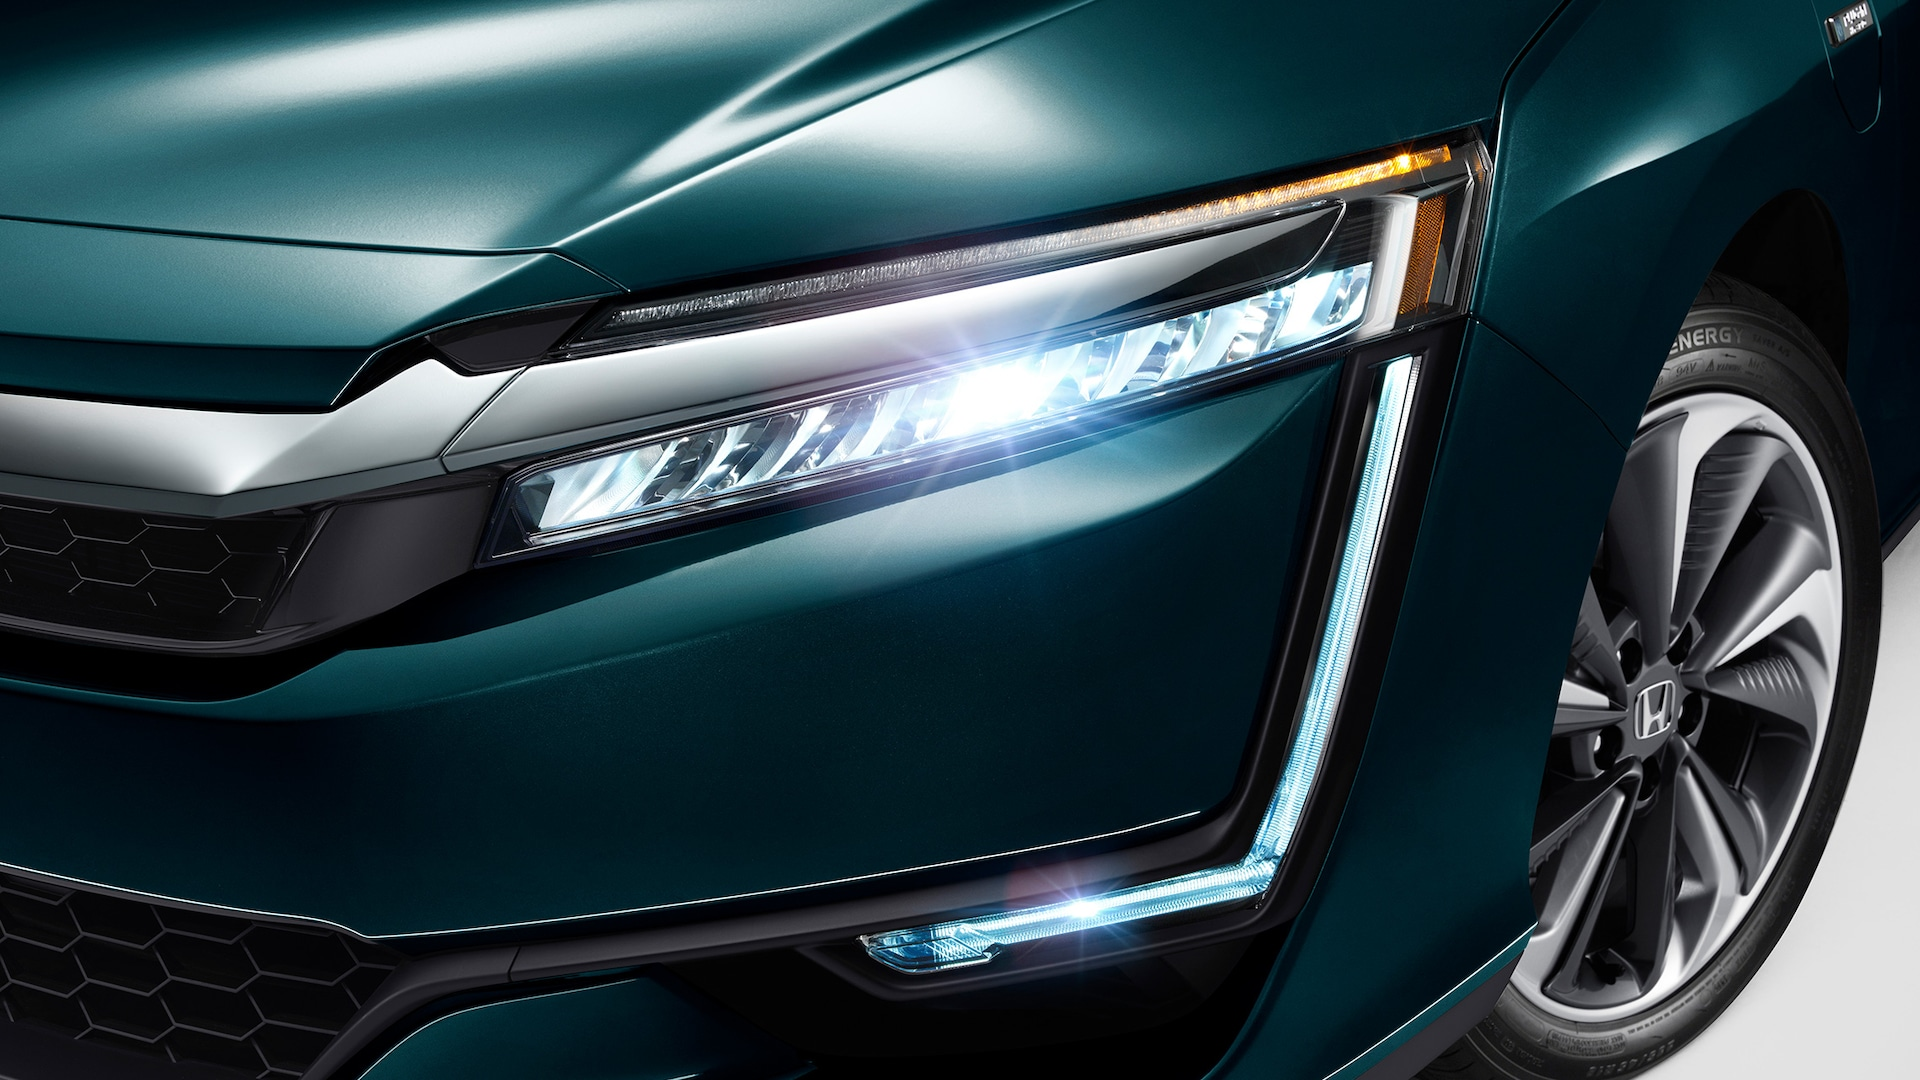 Detail of full LED headlights and DRL on 2020 Clarity Plug-In Hybrid in Moonlit Forest Pearl.